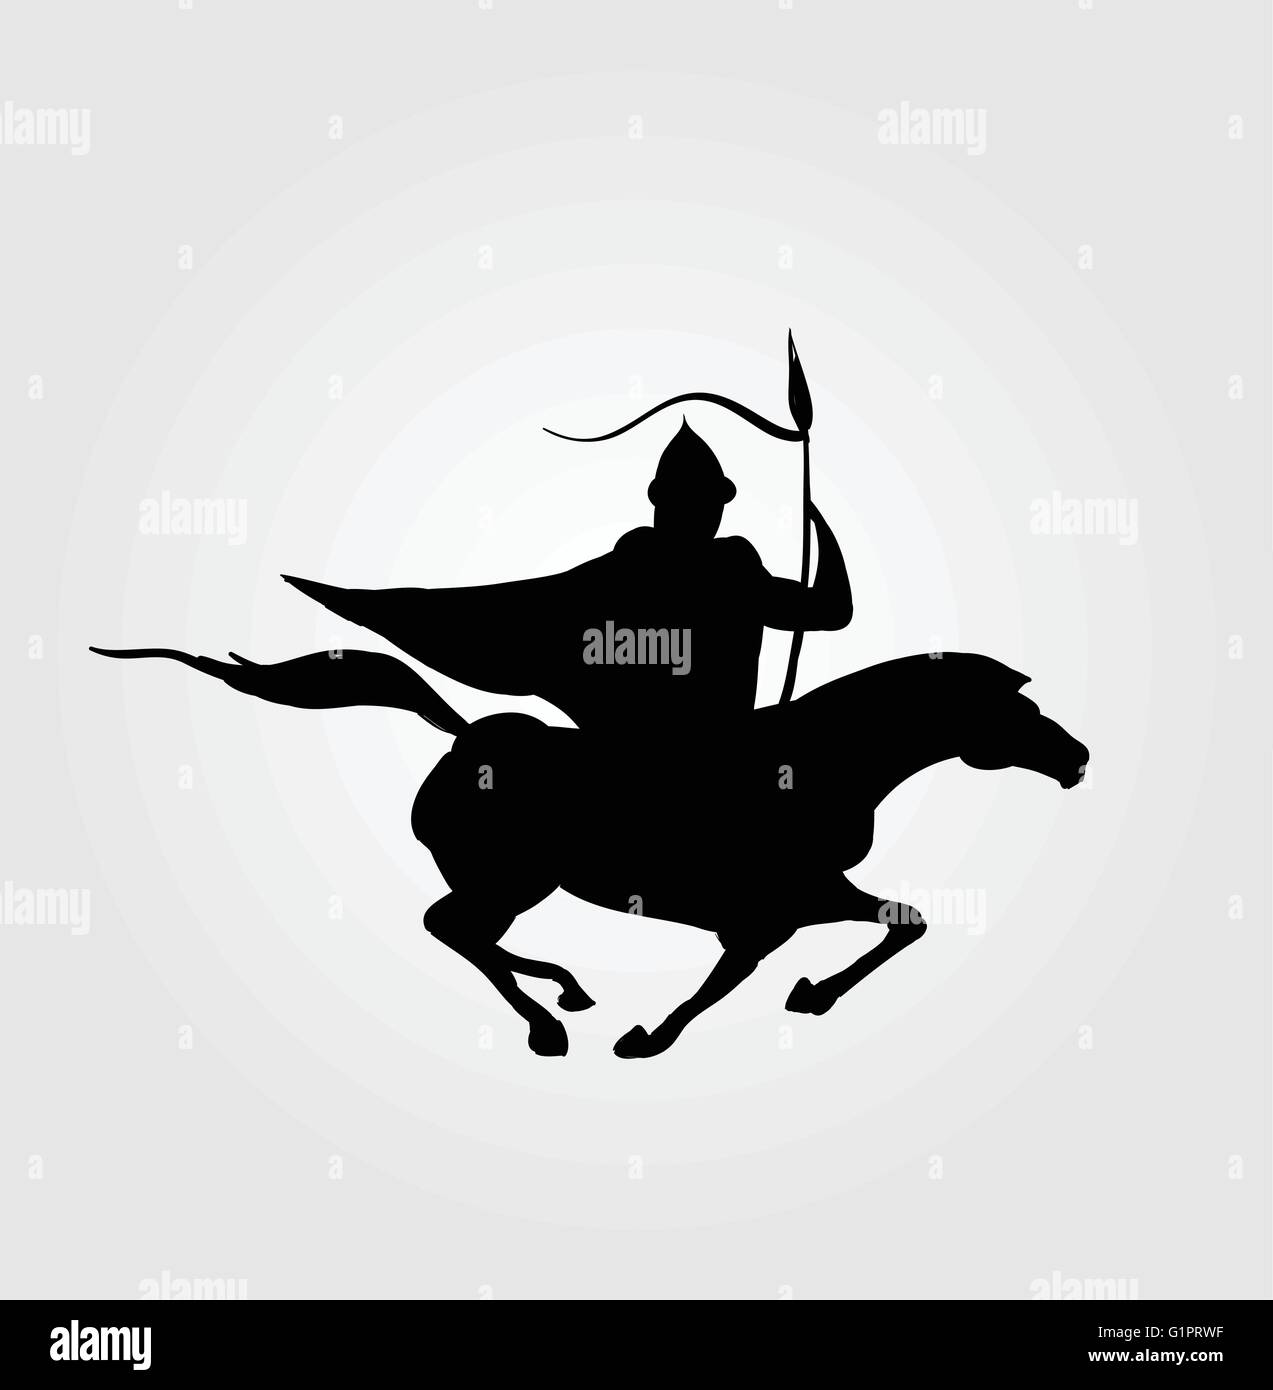 vector symbol of a horseman warrior stock vector art illustration